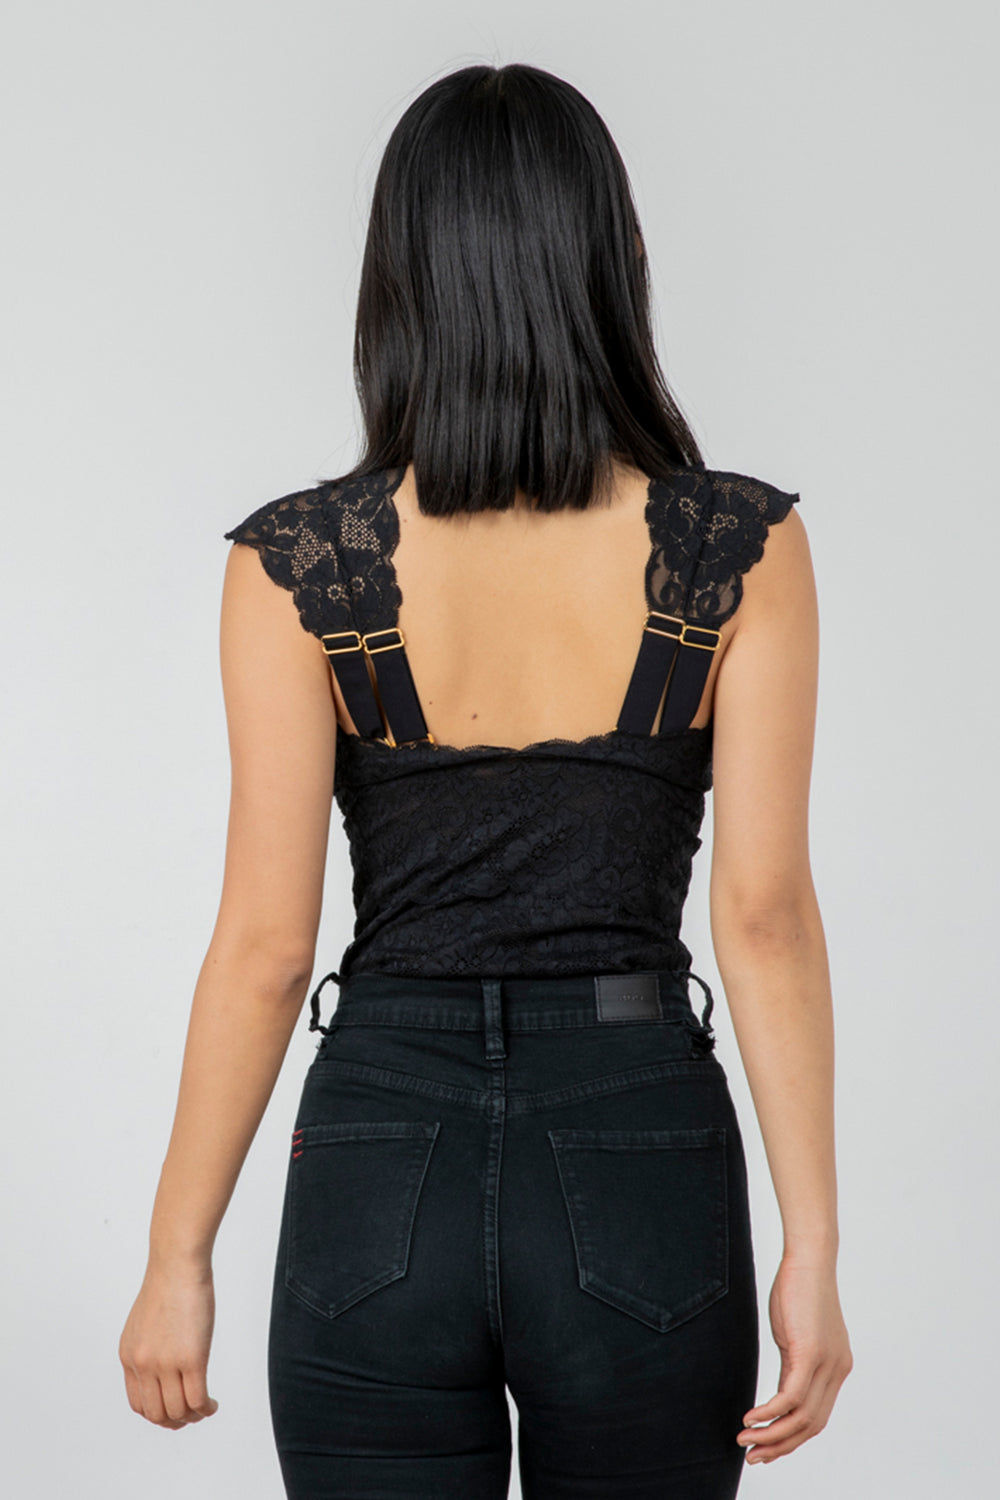 black lace v neck bodysuit with adjustable straps